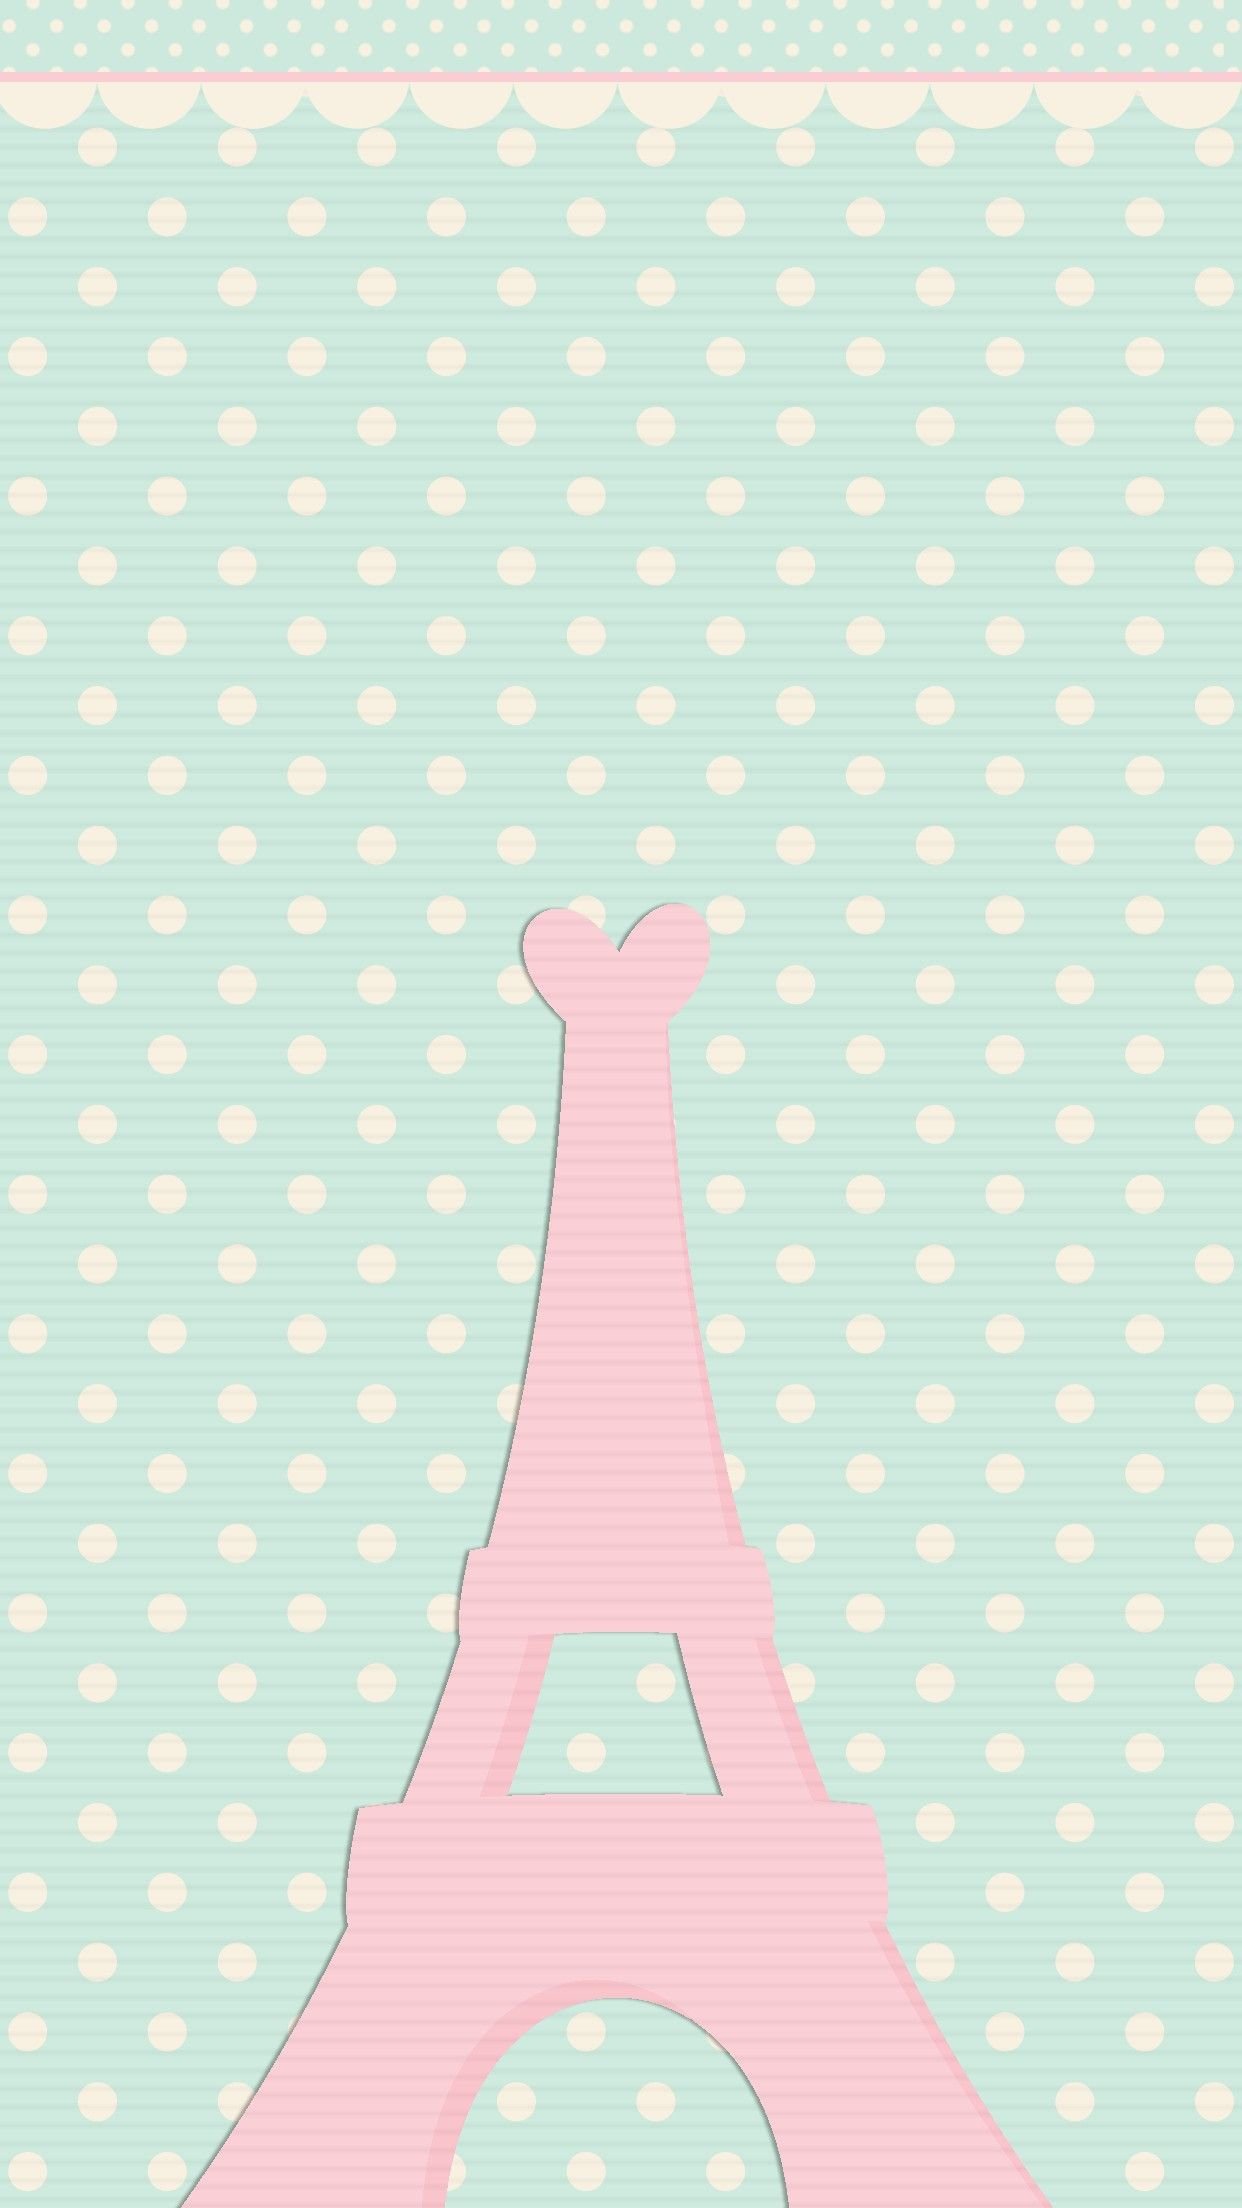 Simple Wallpaper Hello Kitty Mint Green - 03395f22199042552e5414938af721bd  Best Photo Reference_85837.jpg